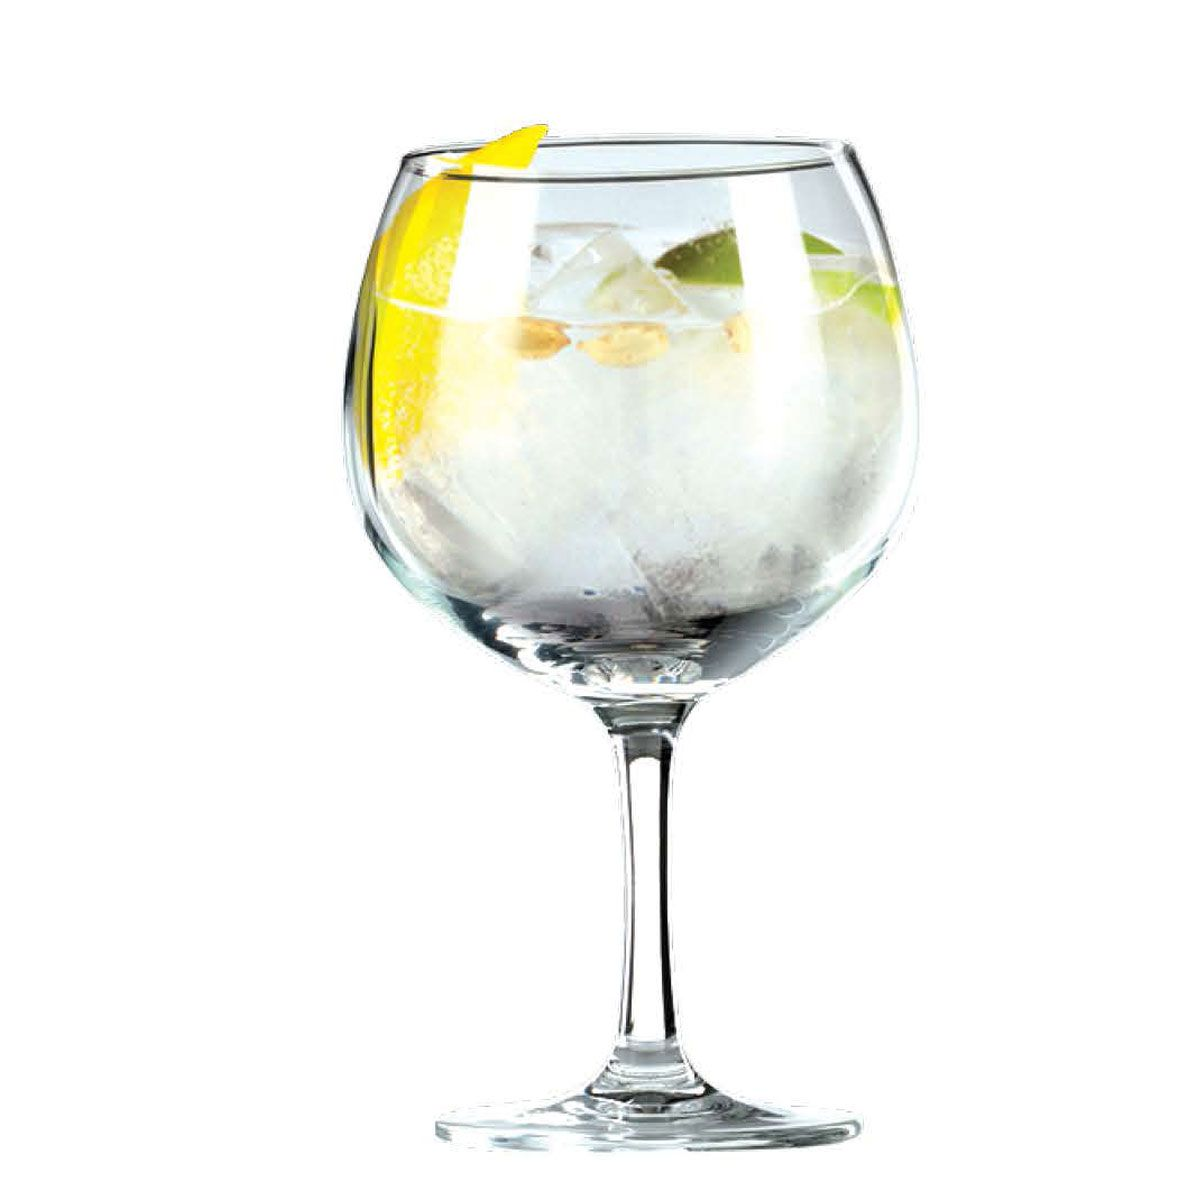 Taça Cristal Gin Club 660ml 4 pcs